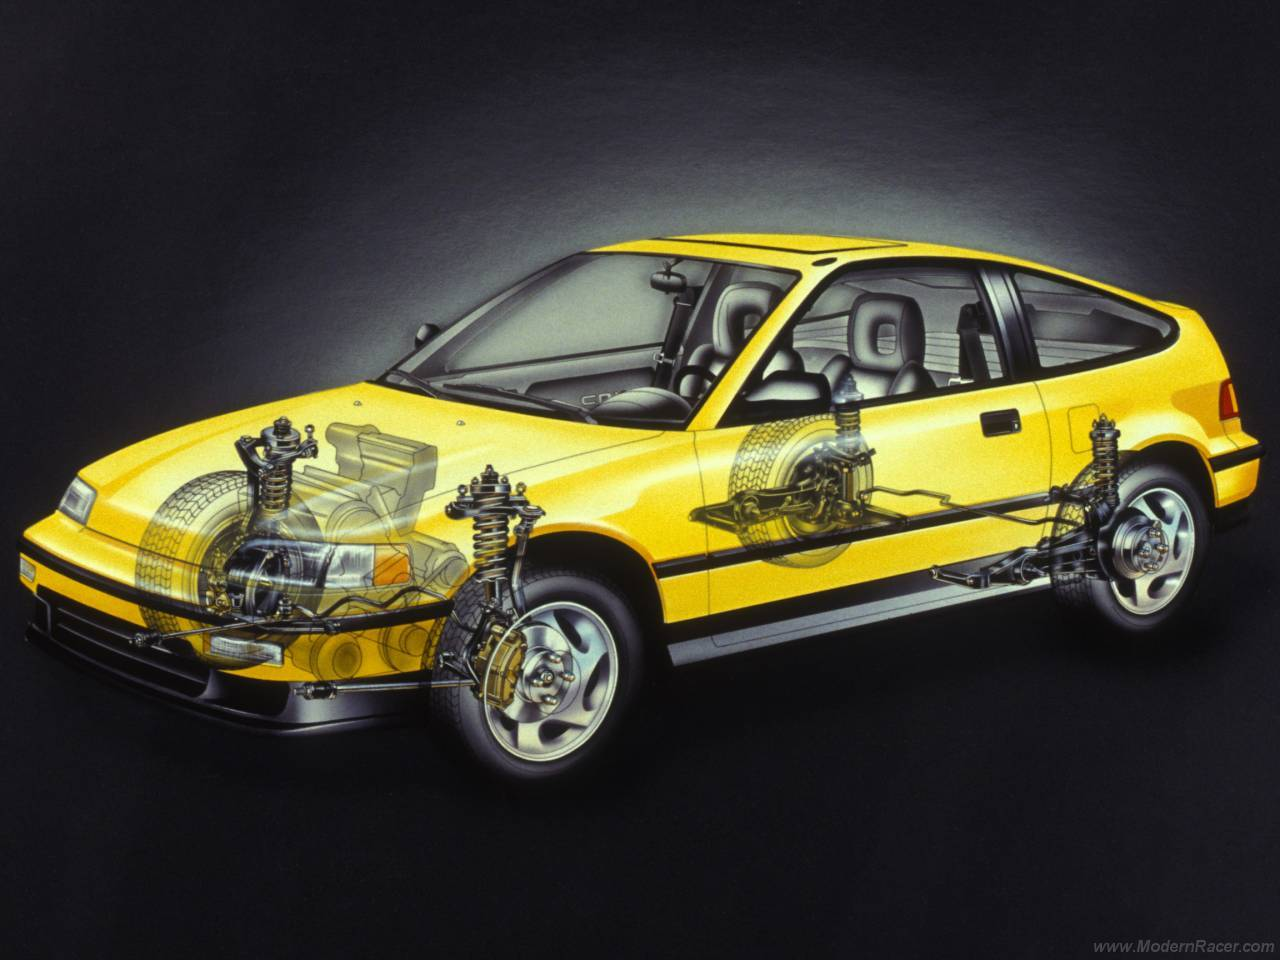 Honda Civic CRX - Car Cutaway - Modern Racer - Features